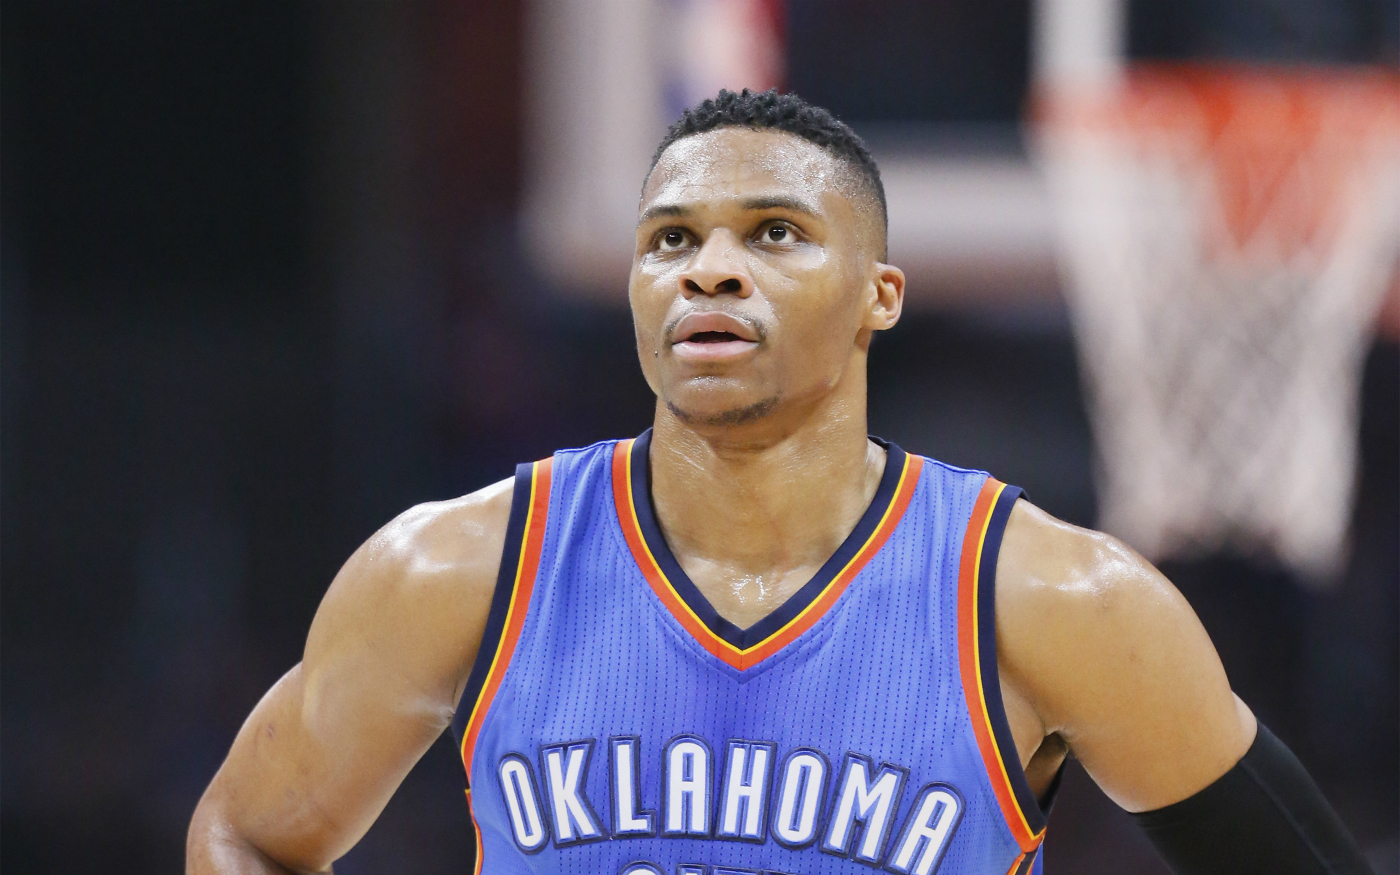 Russell Westbrook s'arrête à 7 TD mais sort un gros match contre Boston